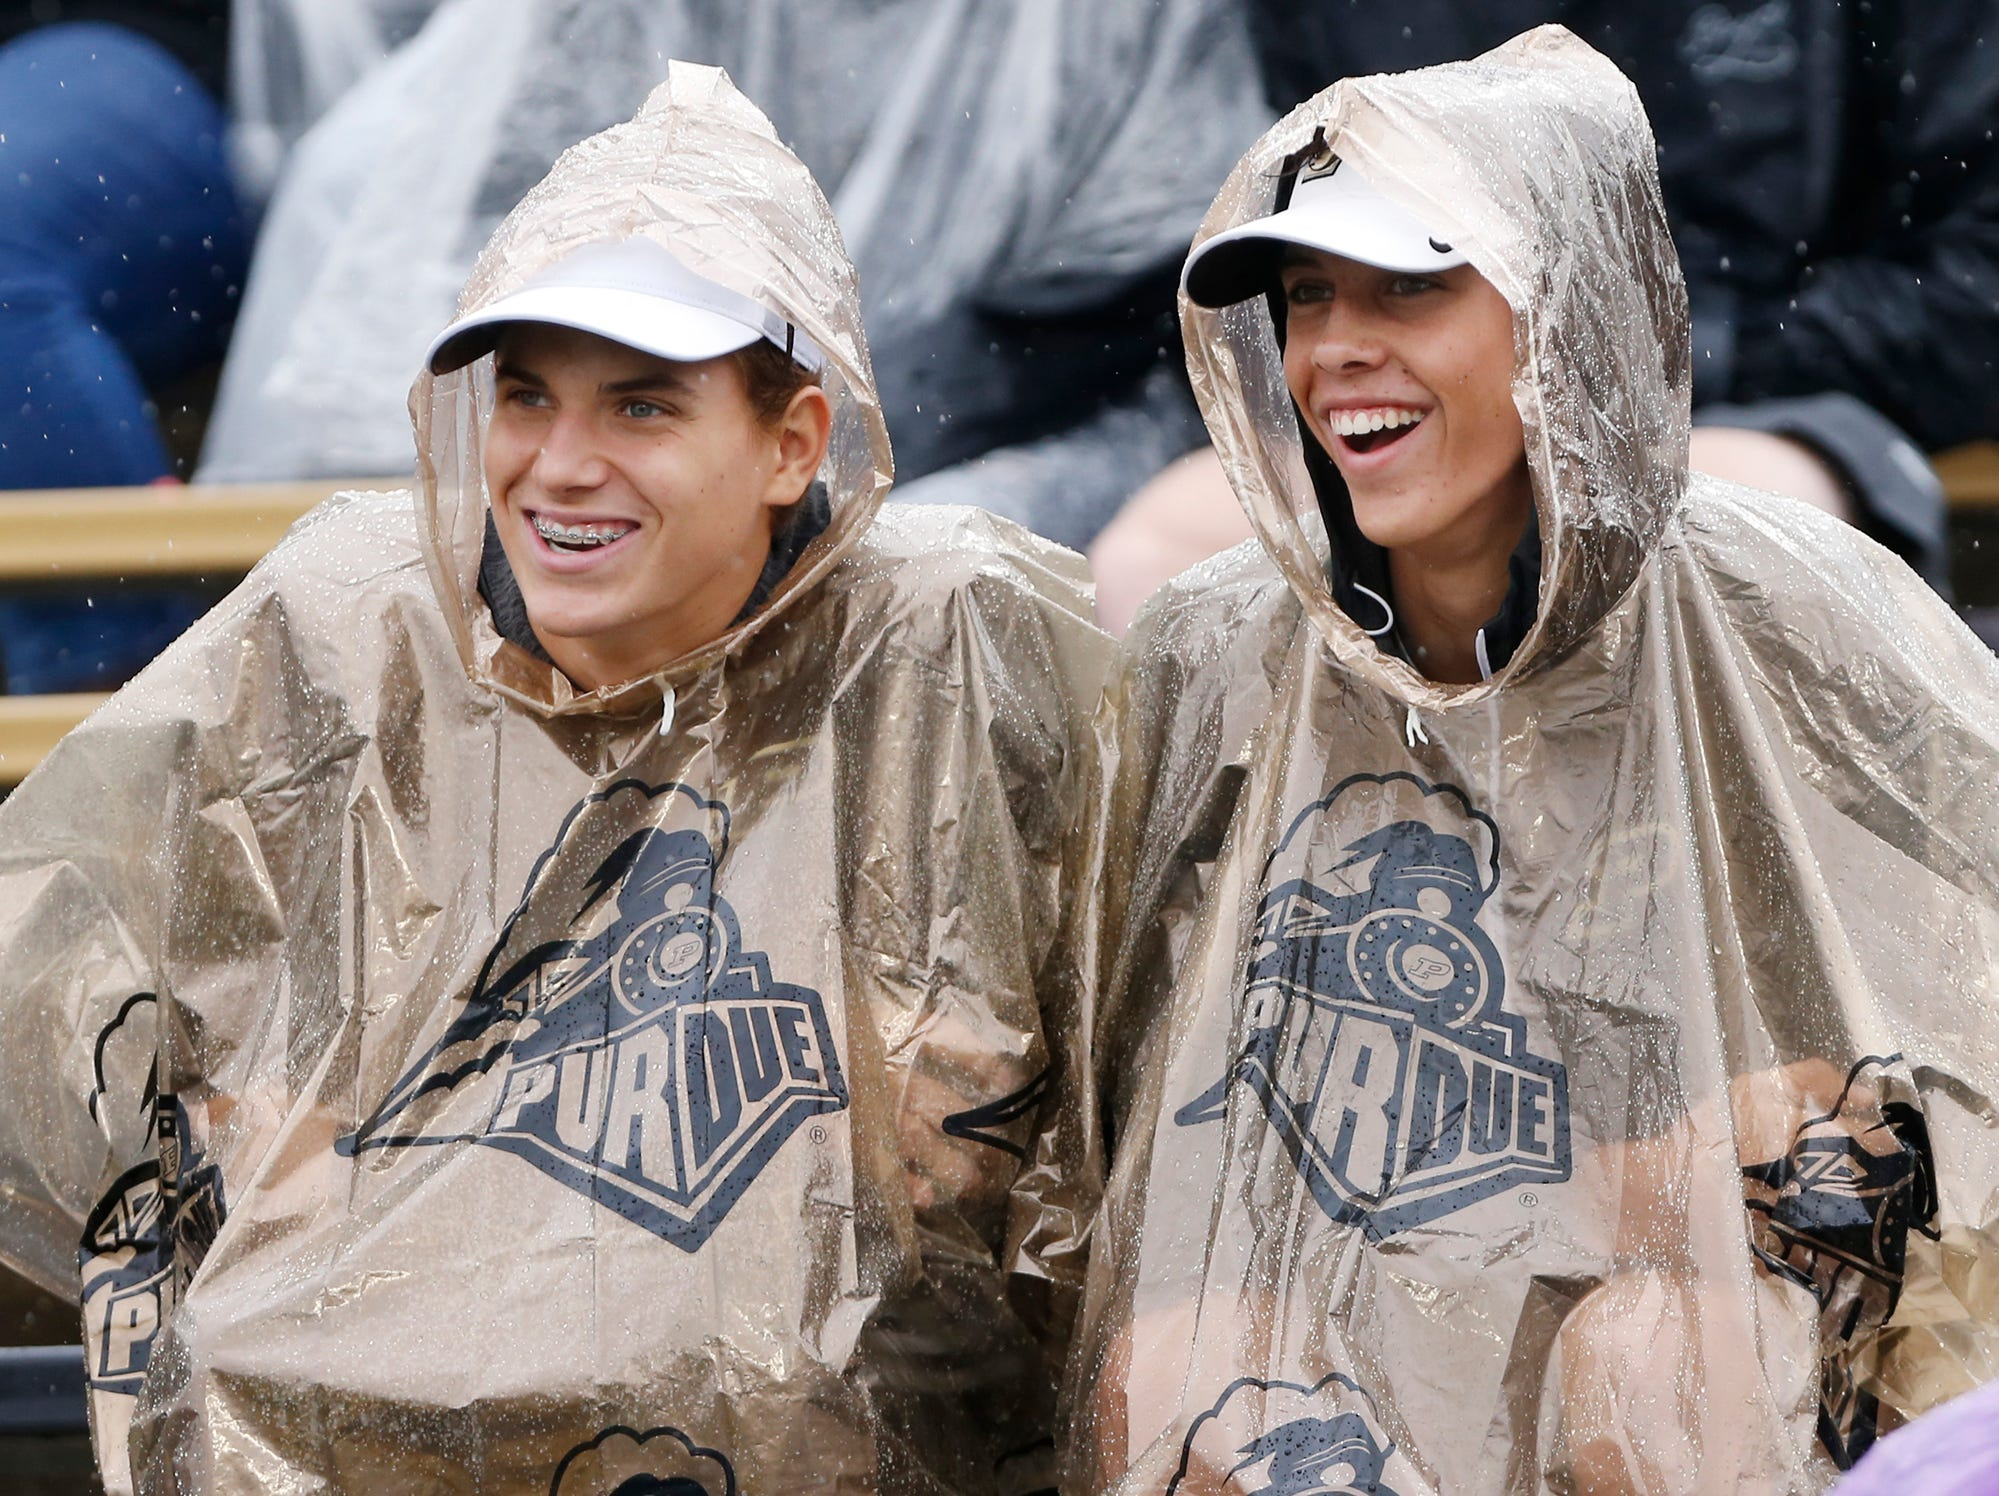 Purdue fans brave the weather as the Boilermakers host Eastern Michigan Saturday, September 8, 2018, in West Lafayette. They didn't have a lot to smile about, as Purdue fell to Eastern Michigan 20-19 on a field goal as time expired.